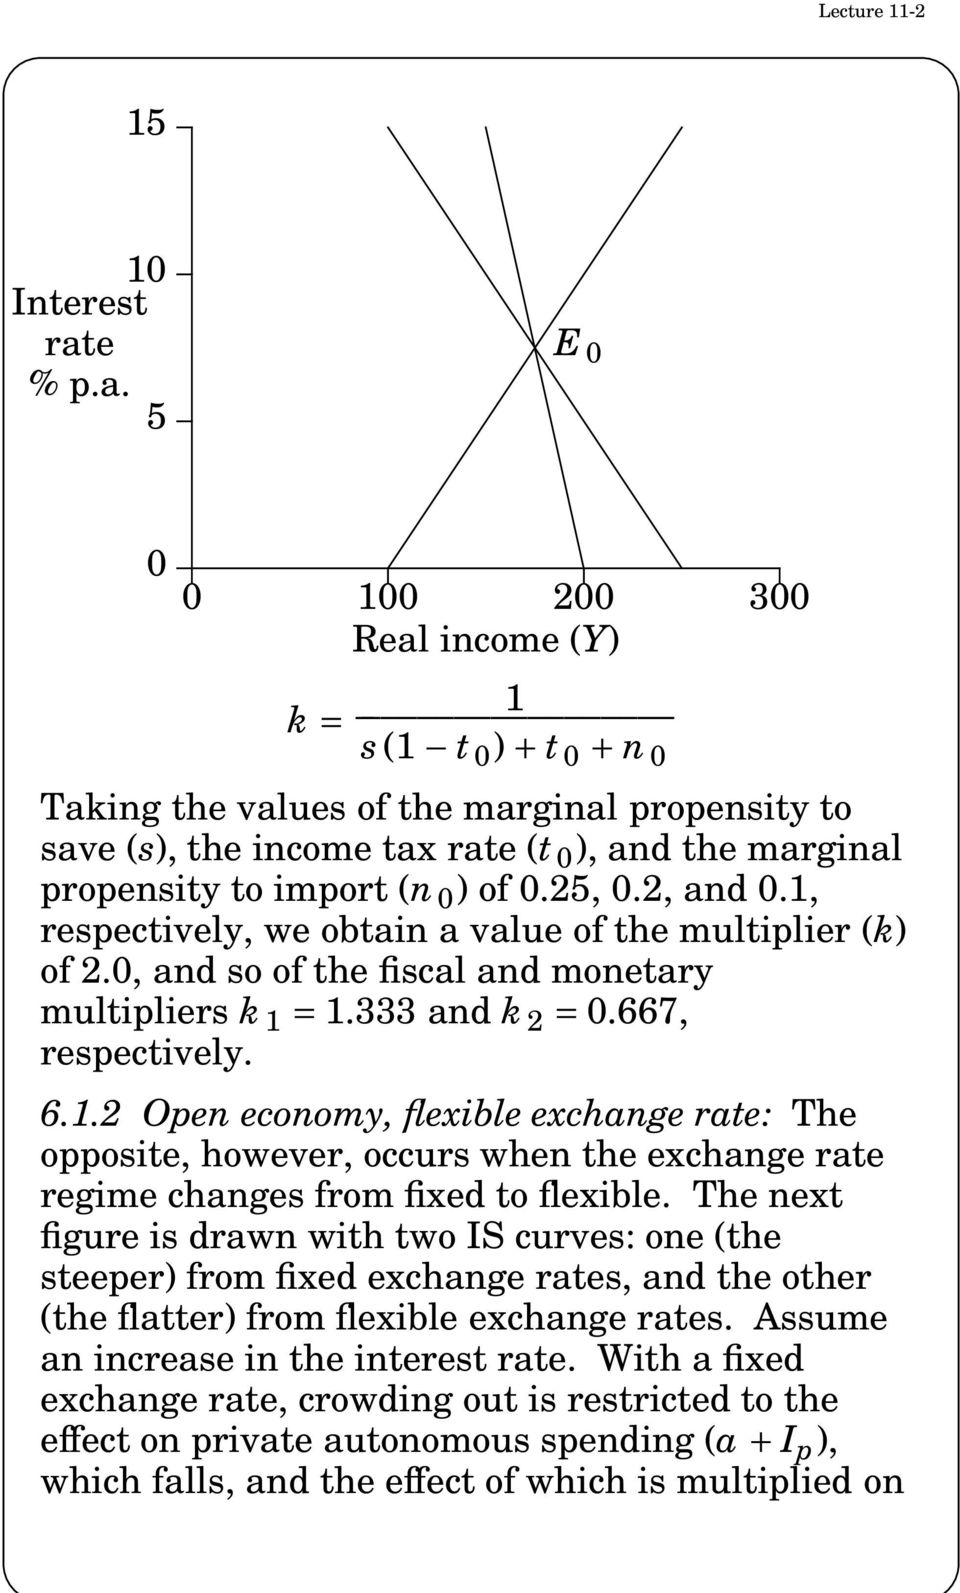 5 E 0 0 0 100 200 300 Real income (Y) k = 1 s (1 t 0 ) + t 0 + n 0 Taking the values of the marginal propensity to save (s), the income tax rate (t 0 ), and the marginal propensity to import (n 0 )